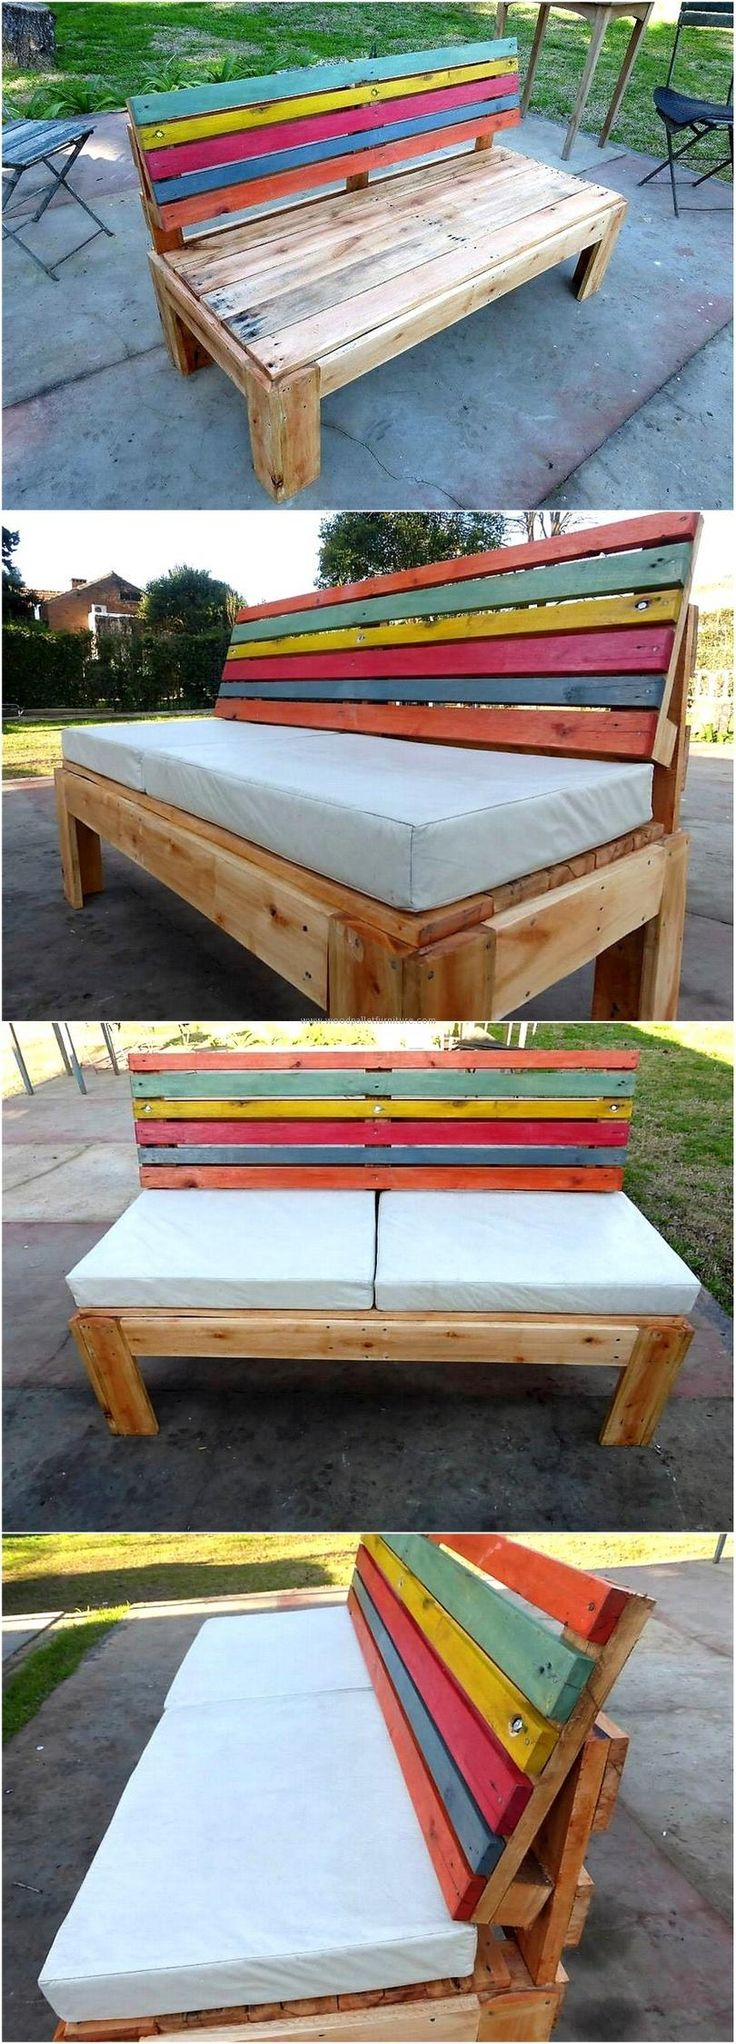 Here is presented the recycled wood pallet bench, which is made colorful by painting the pallets with different funky colors. The pallets on the seating area are not painted which is making the back of the chair look prominent because of multi-shading. The bench can be placed without the foam or with it for the comfortable seating.